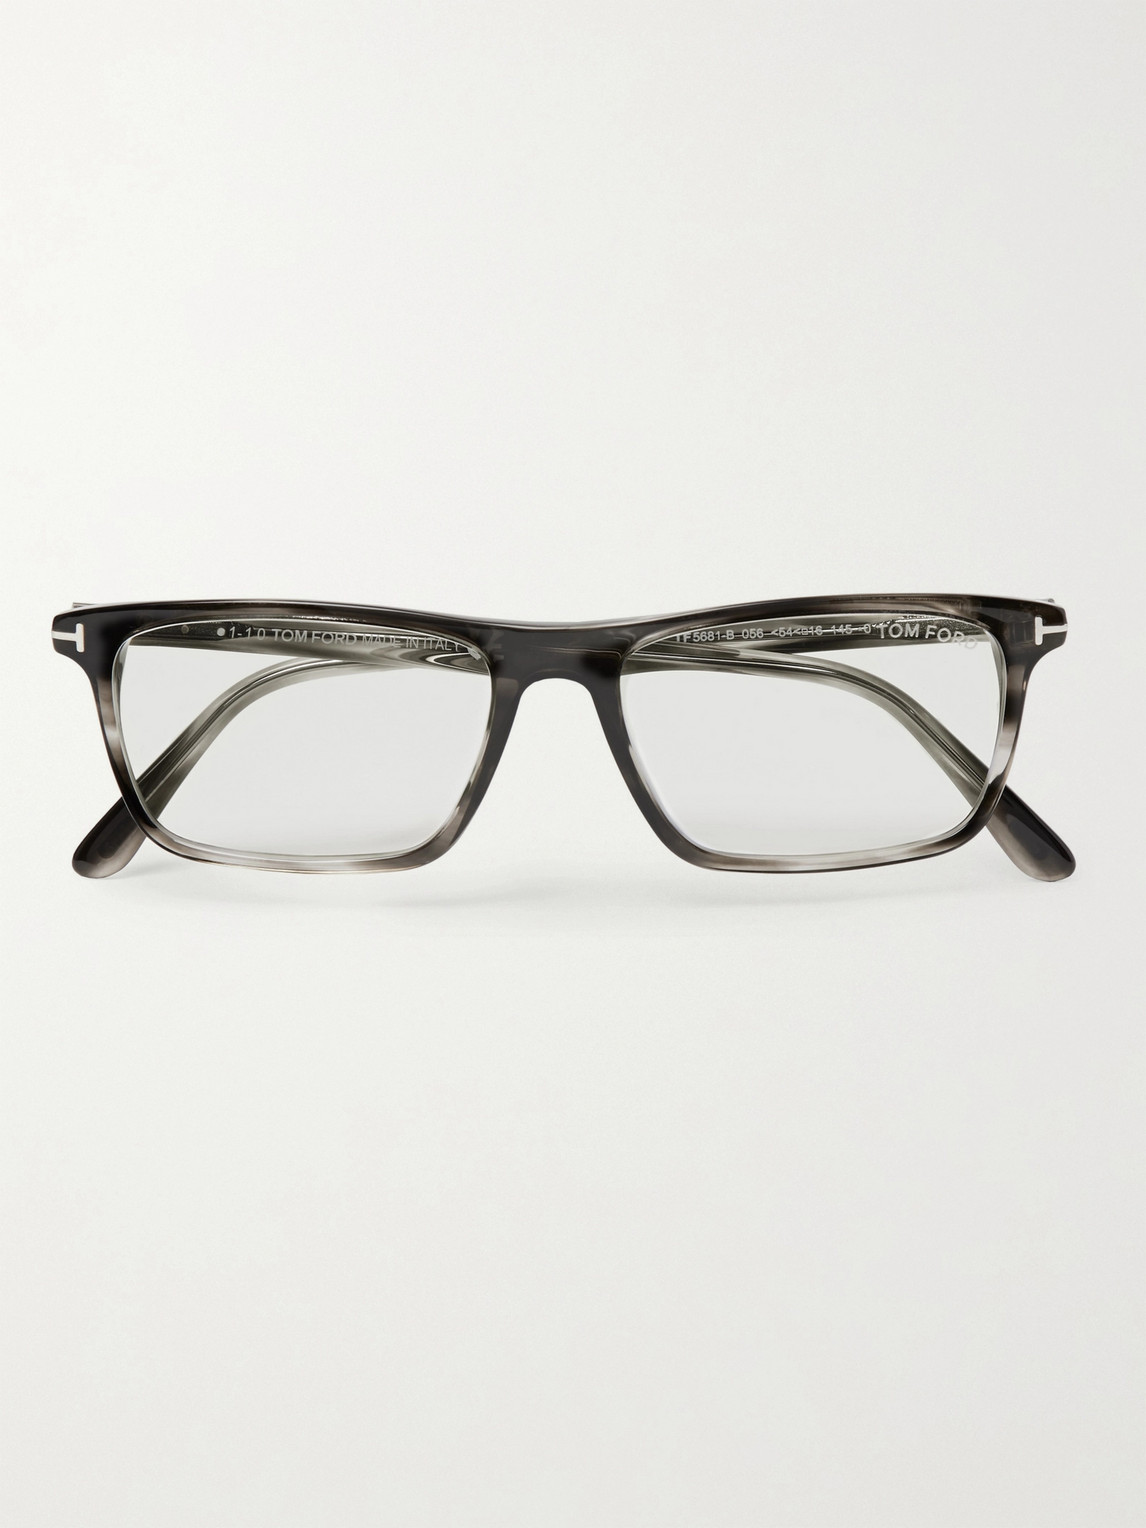 Tom Ford Square-frame Acetate Optical Glasses In Gray